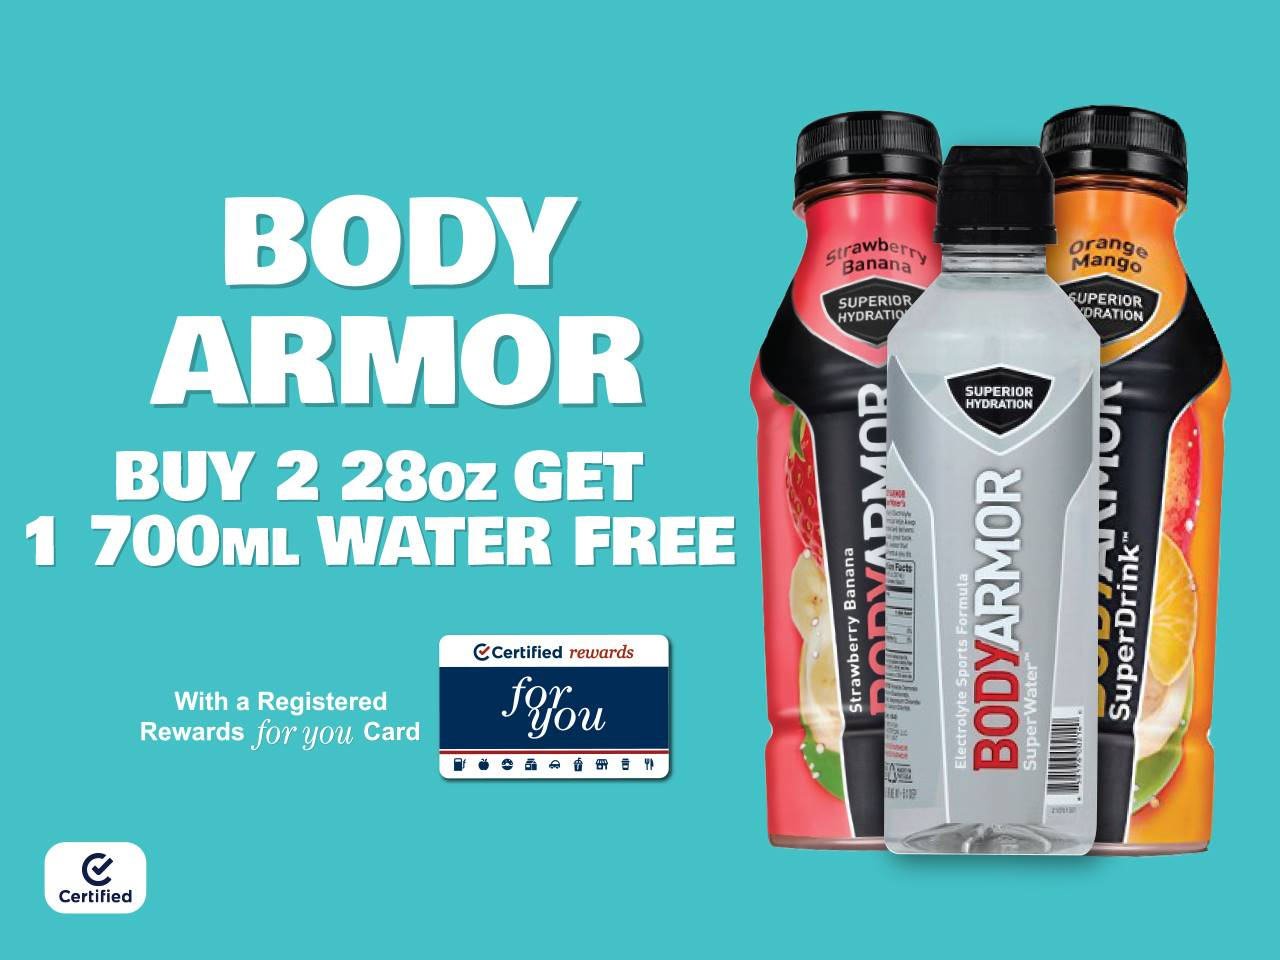 Boy Armor Buy 2 28oz, Get 1 700mL Water Free with Registered Rewards For You Card